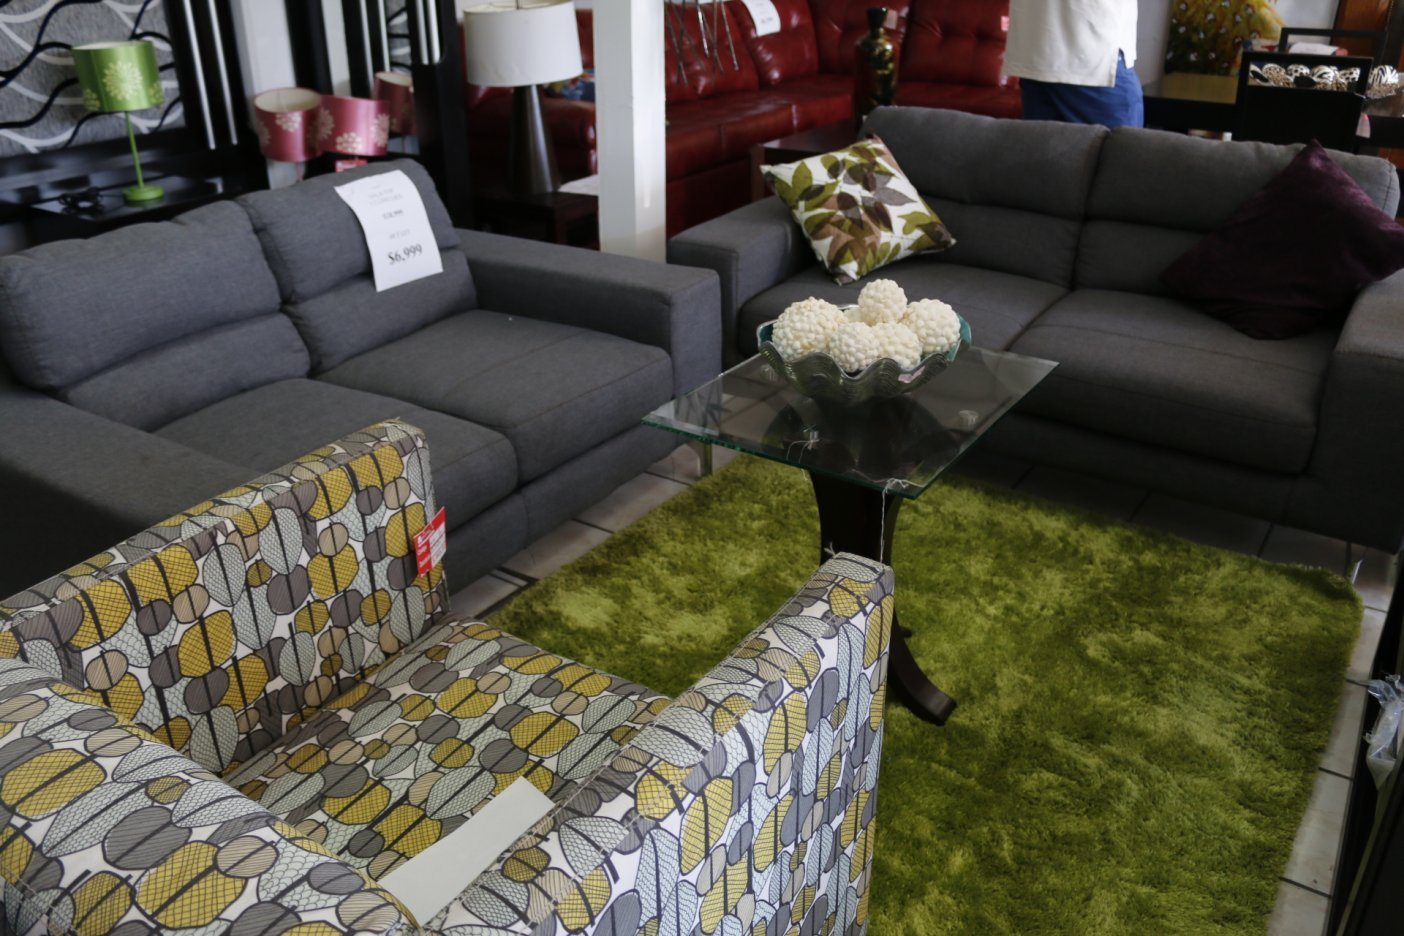 Outlet Muebles Sur Inauguran Outlet Zaragoza Muebles Noroeste